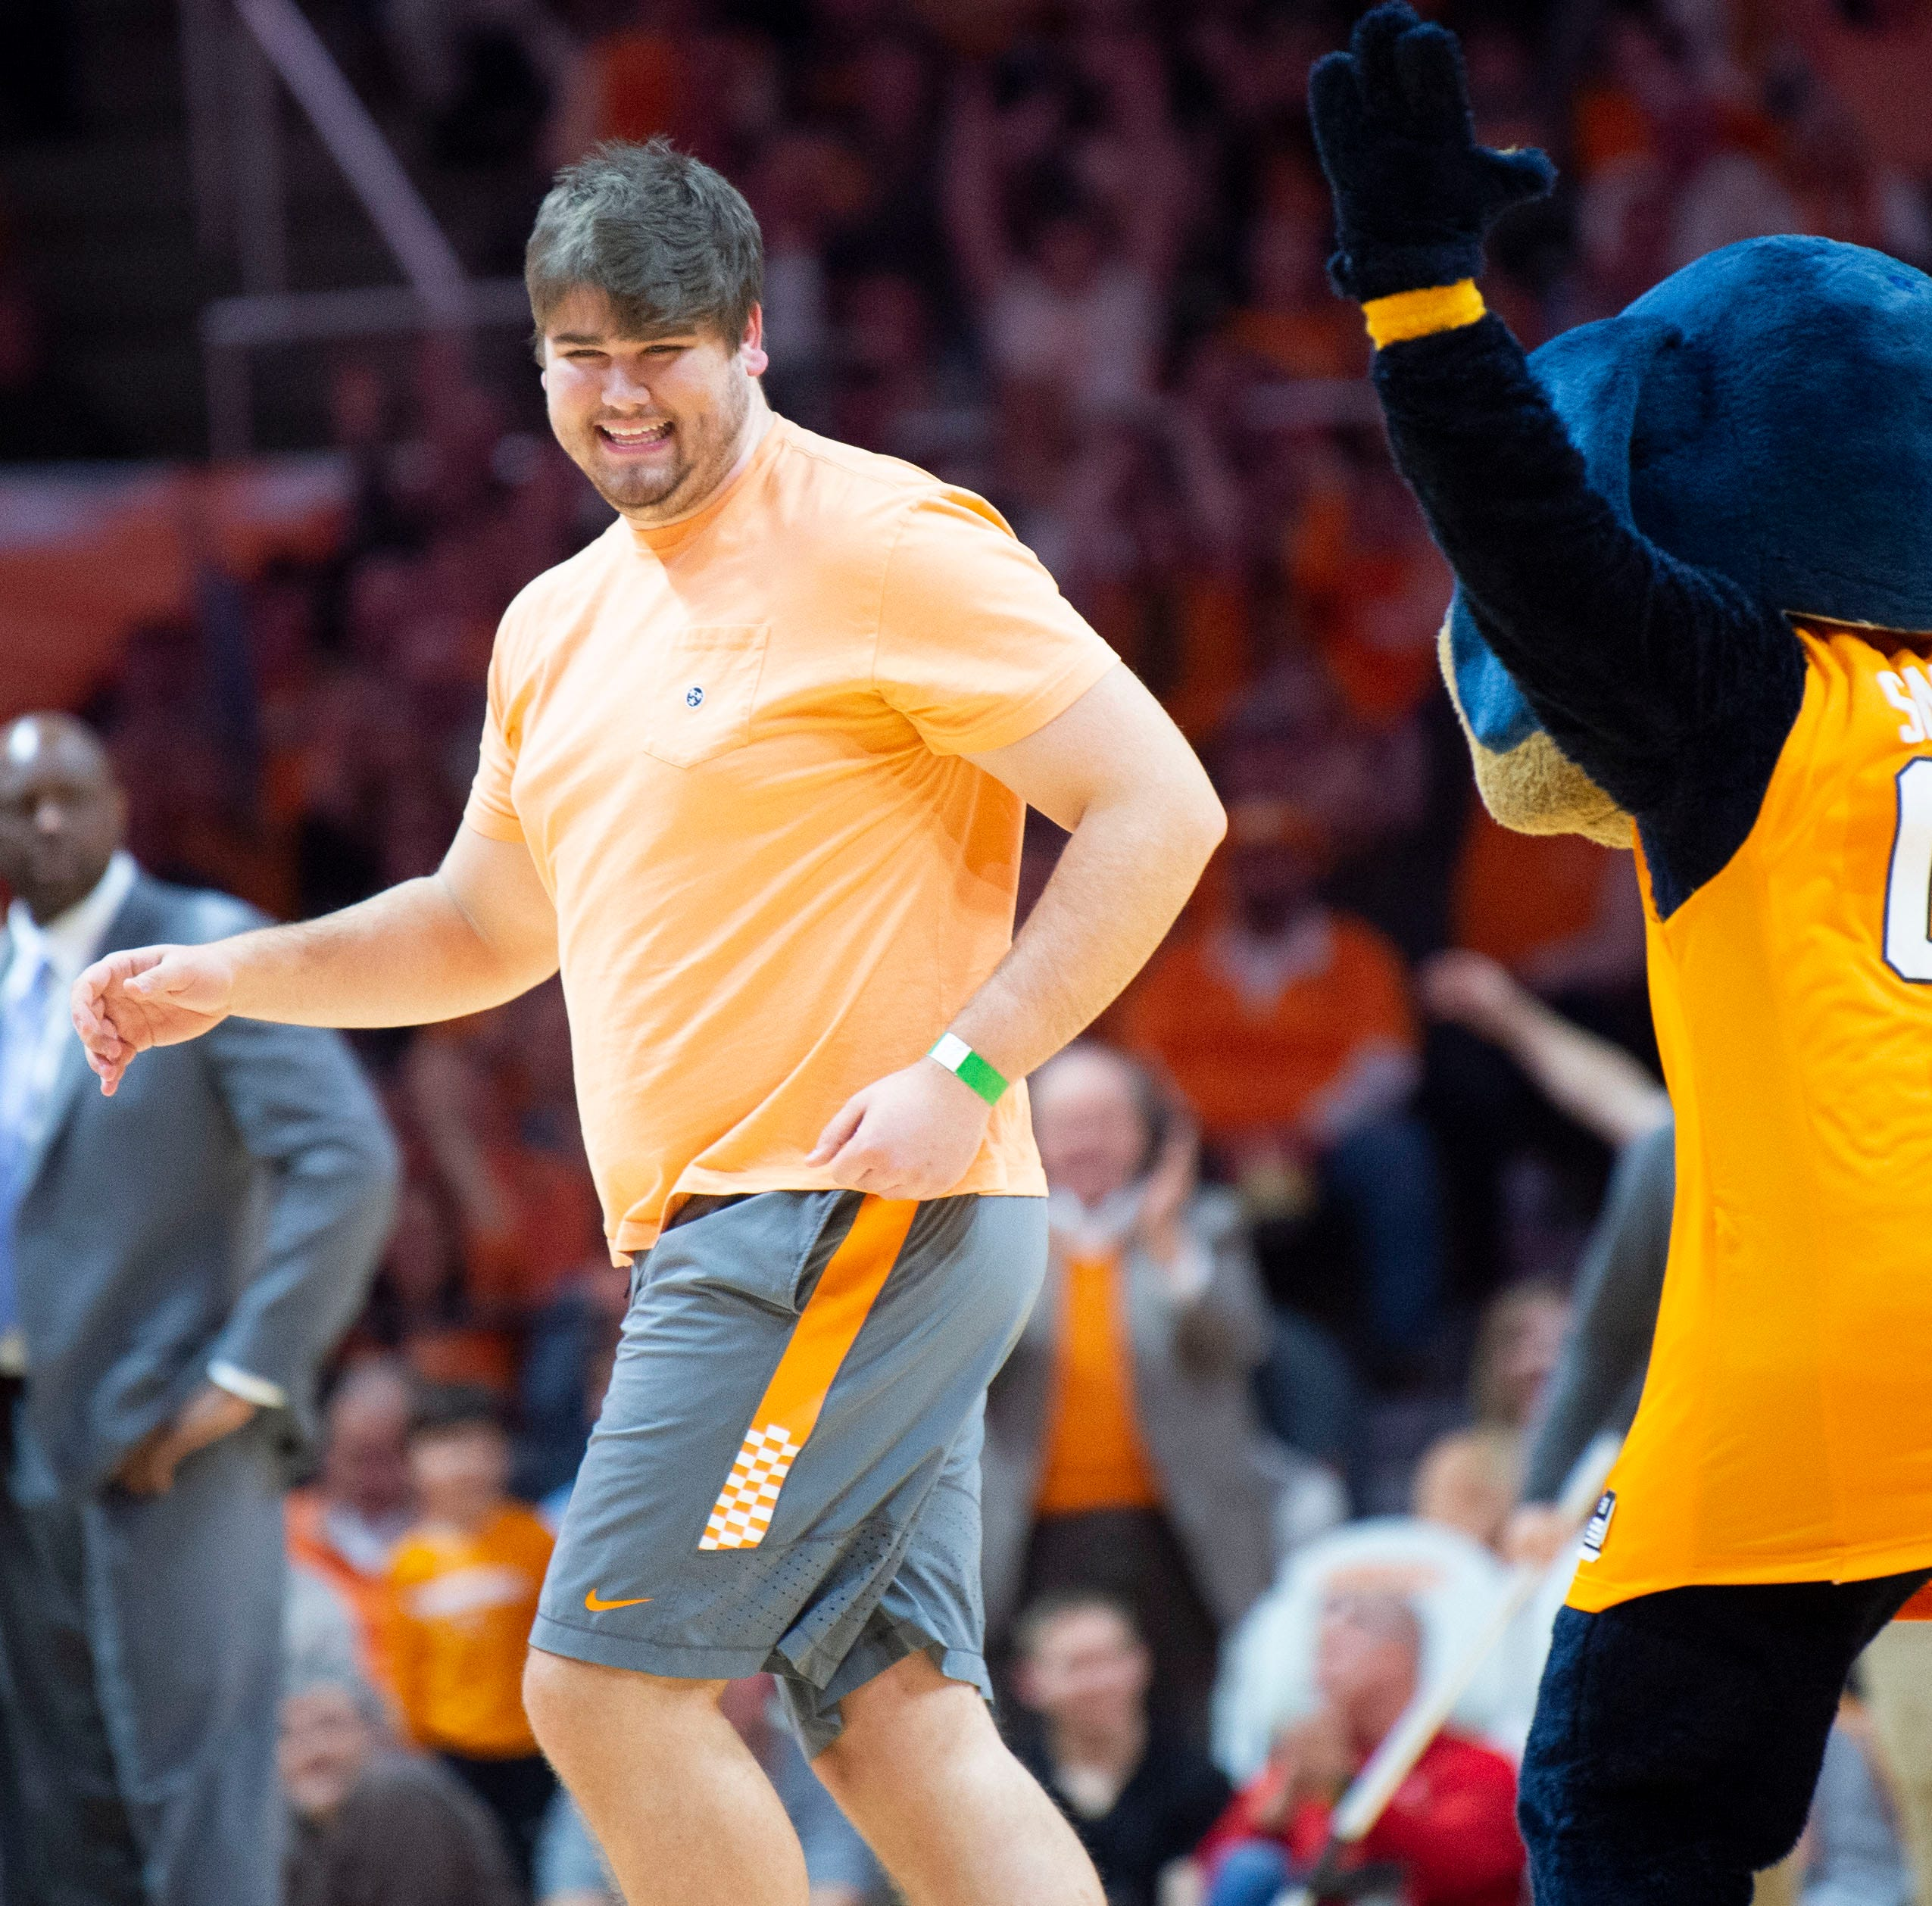 Former Vol lineman basks in the glory of his half-court shot. Watch!